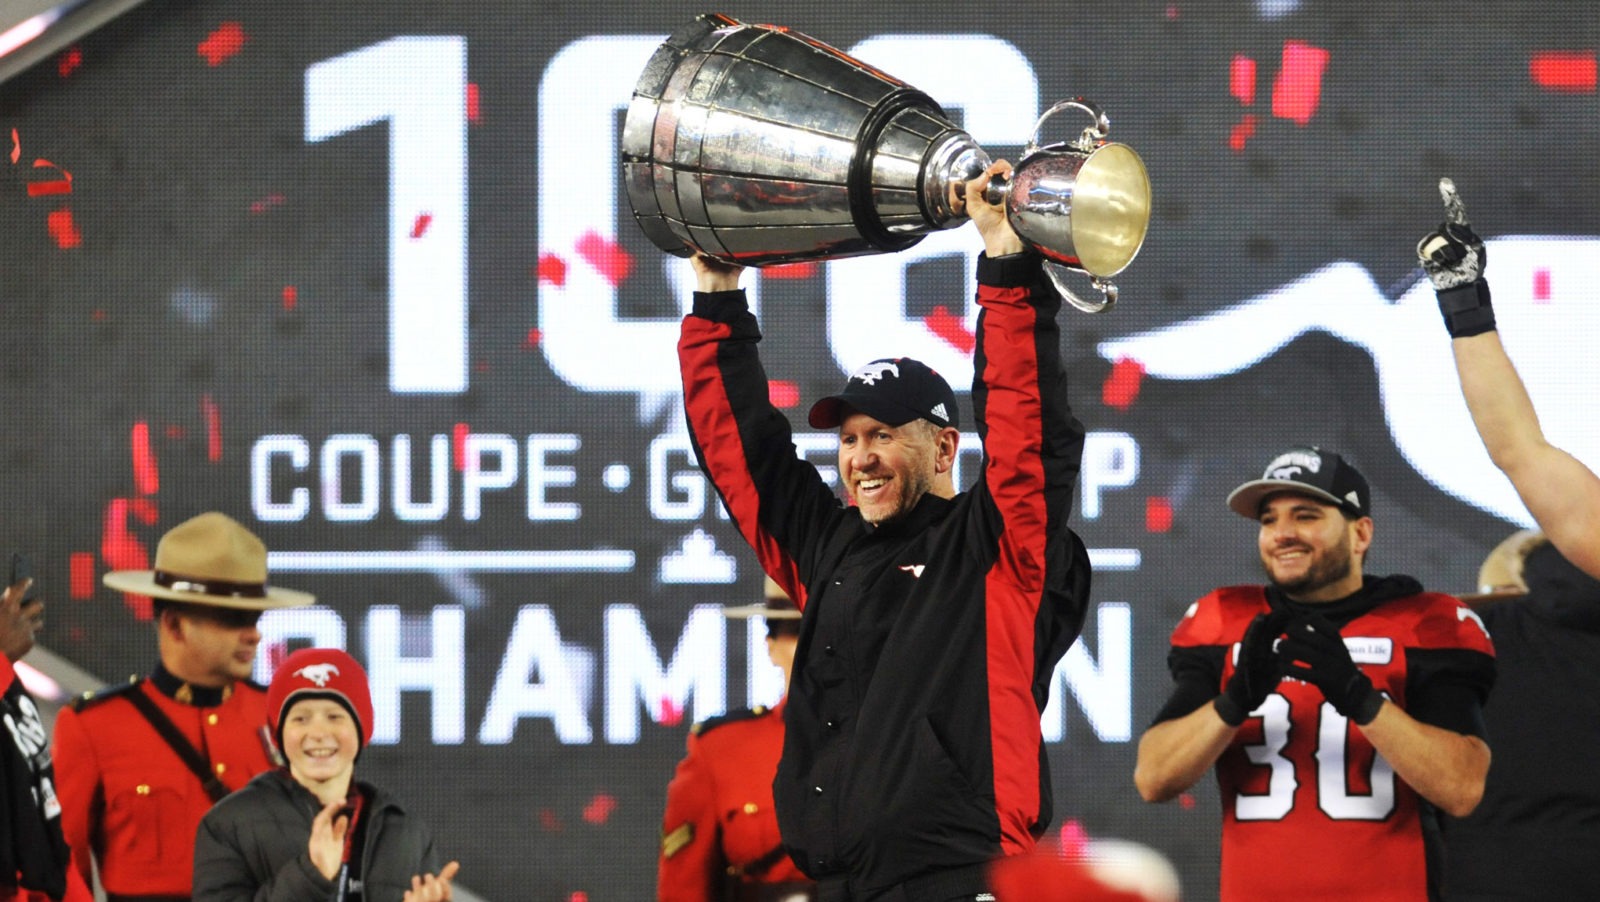 Stamp of authority: third time's a charm for Calgary as they claim The Grey Cup